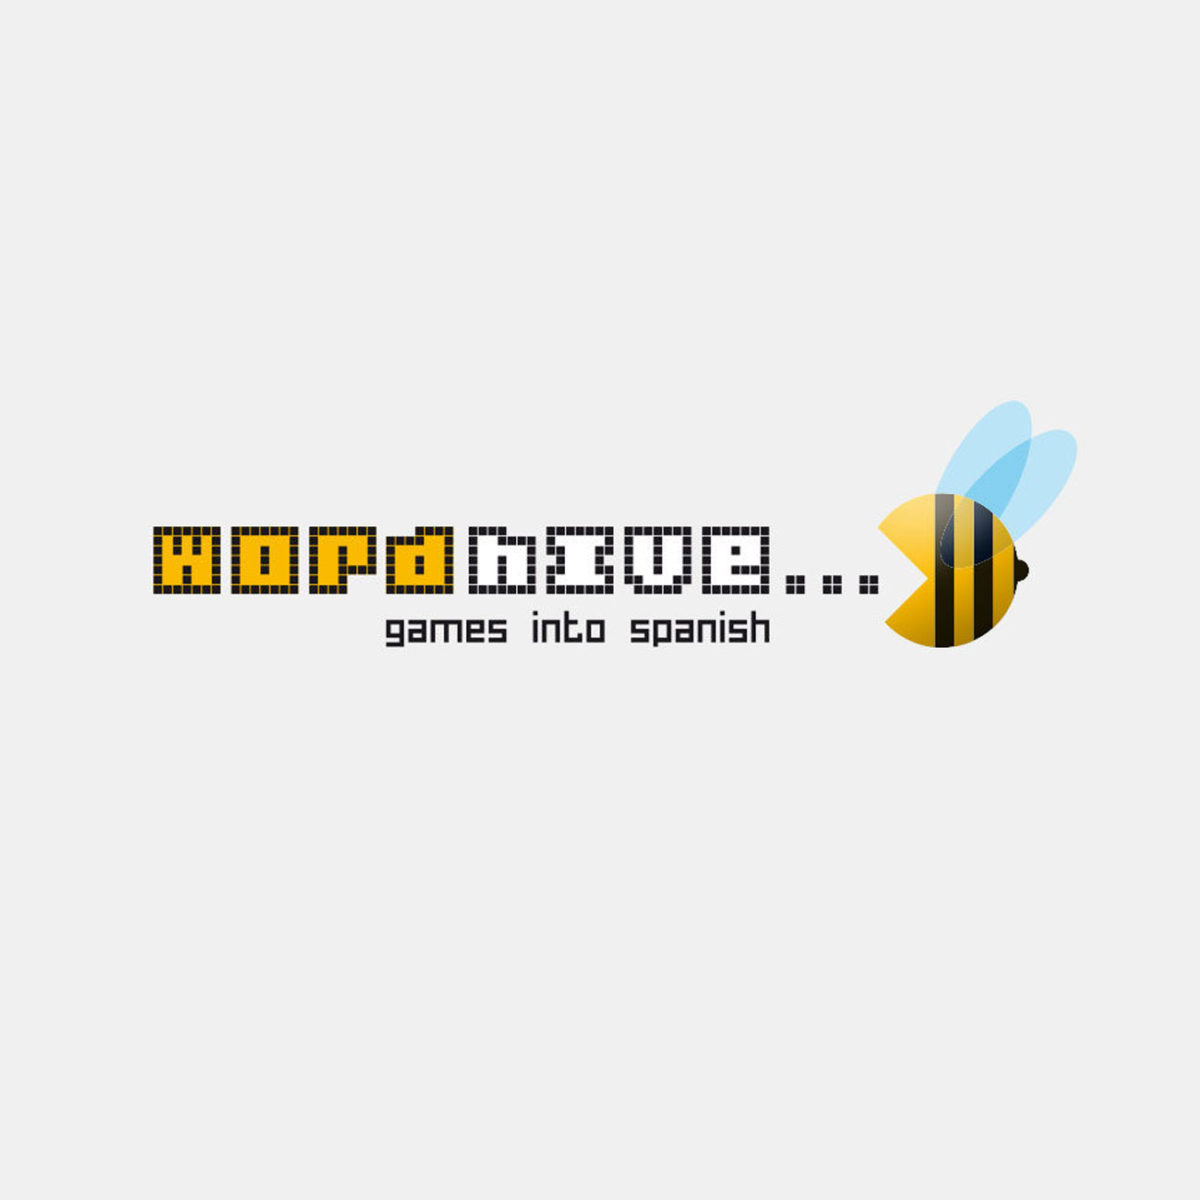 goldnbold_logodesign_wordhive_games_into_spanish